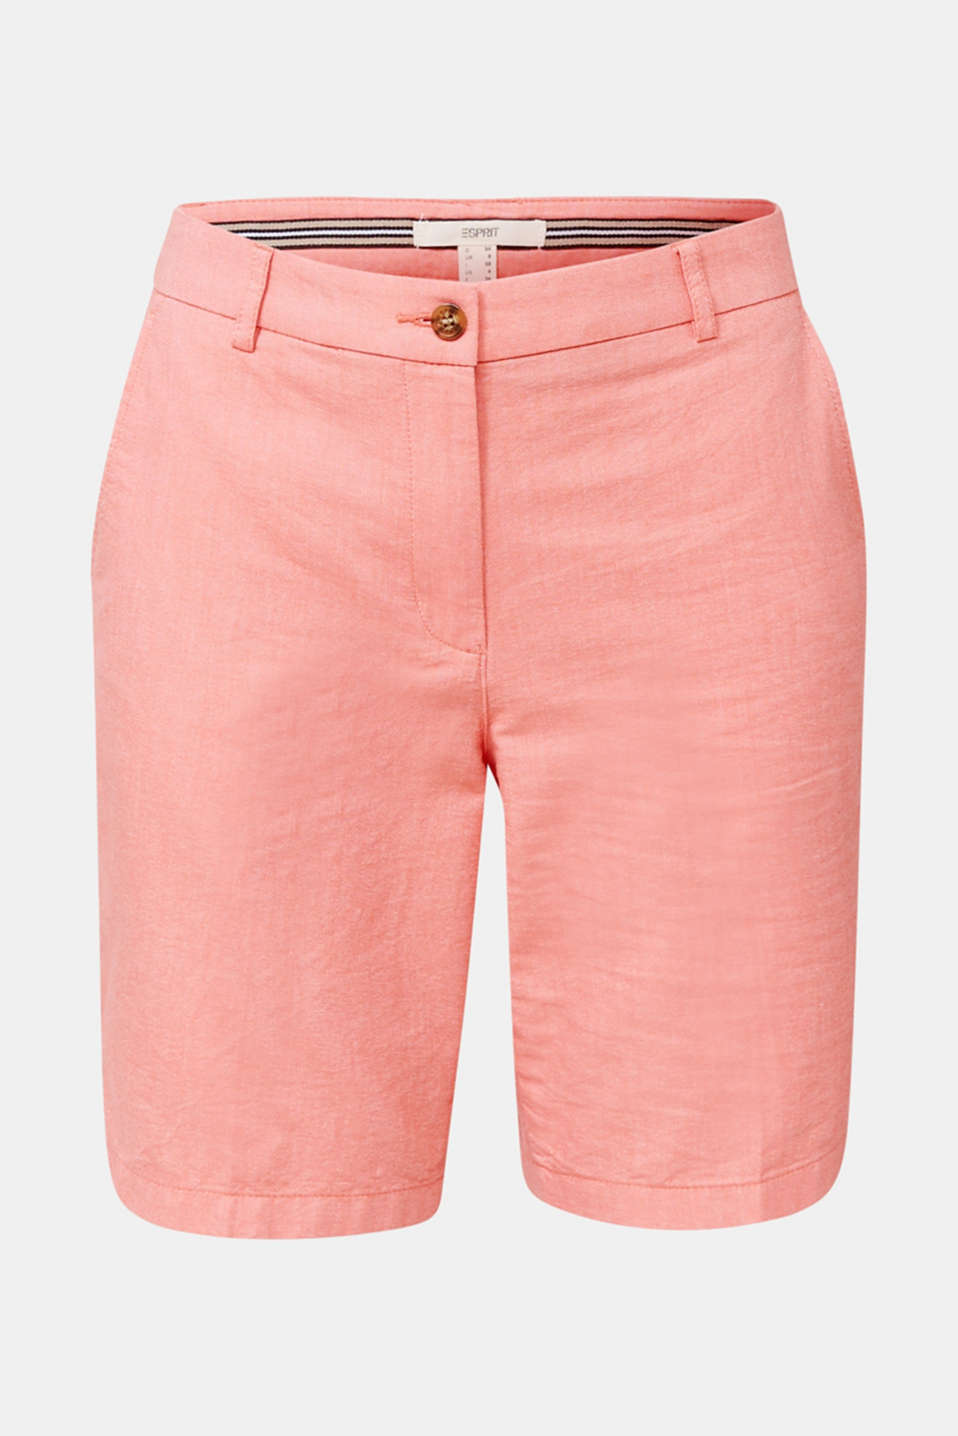 Chambray shorts made of 100% cotton, CORAL, detail image number 6